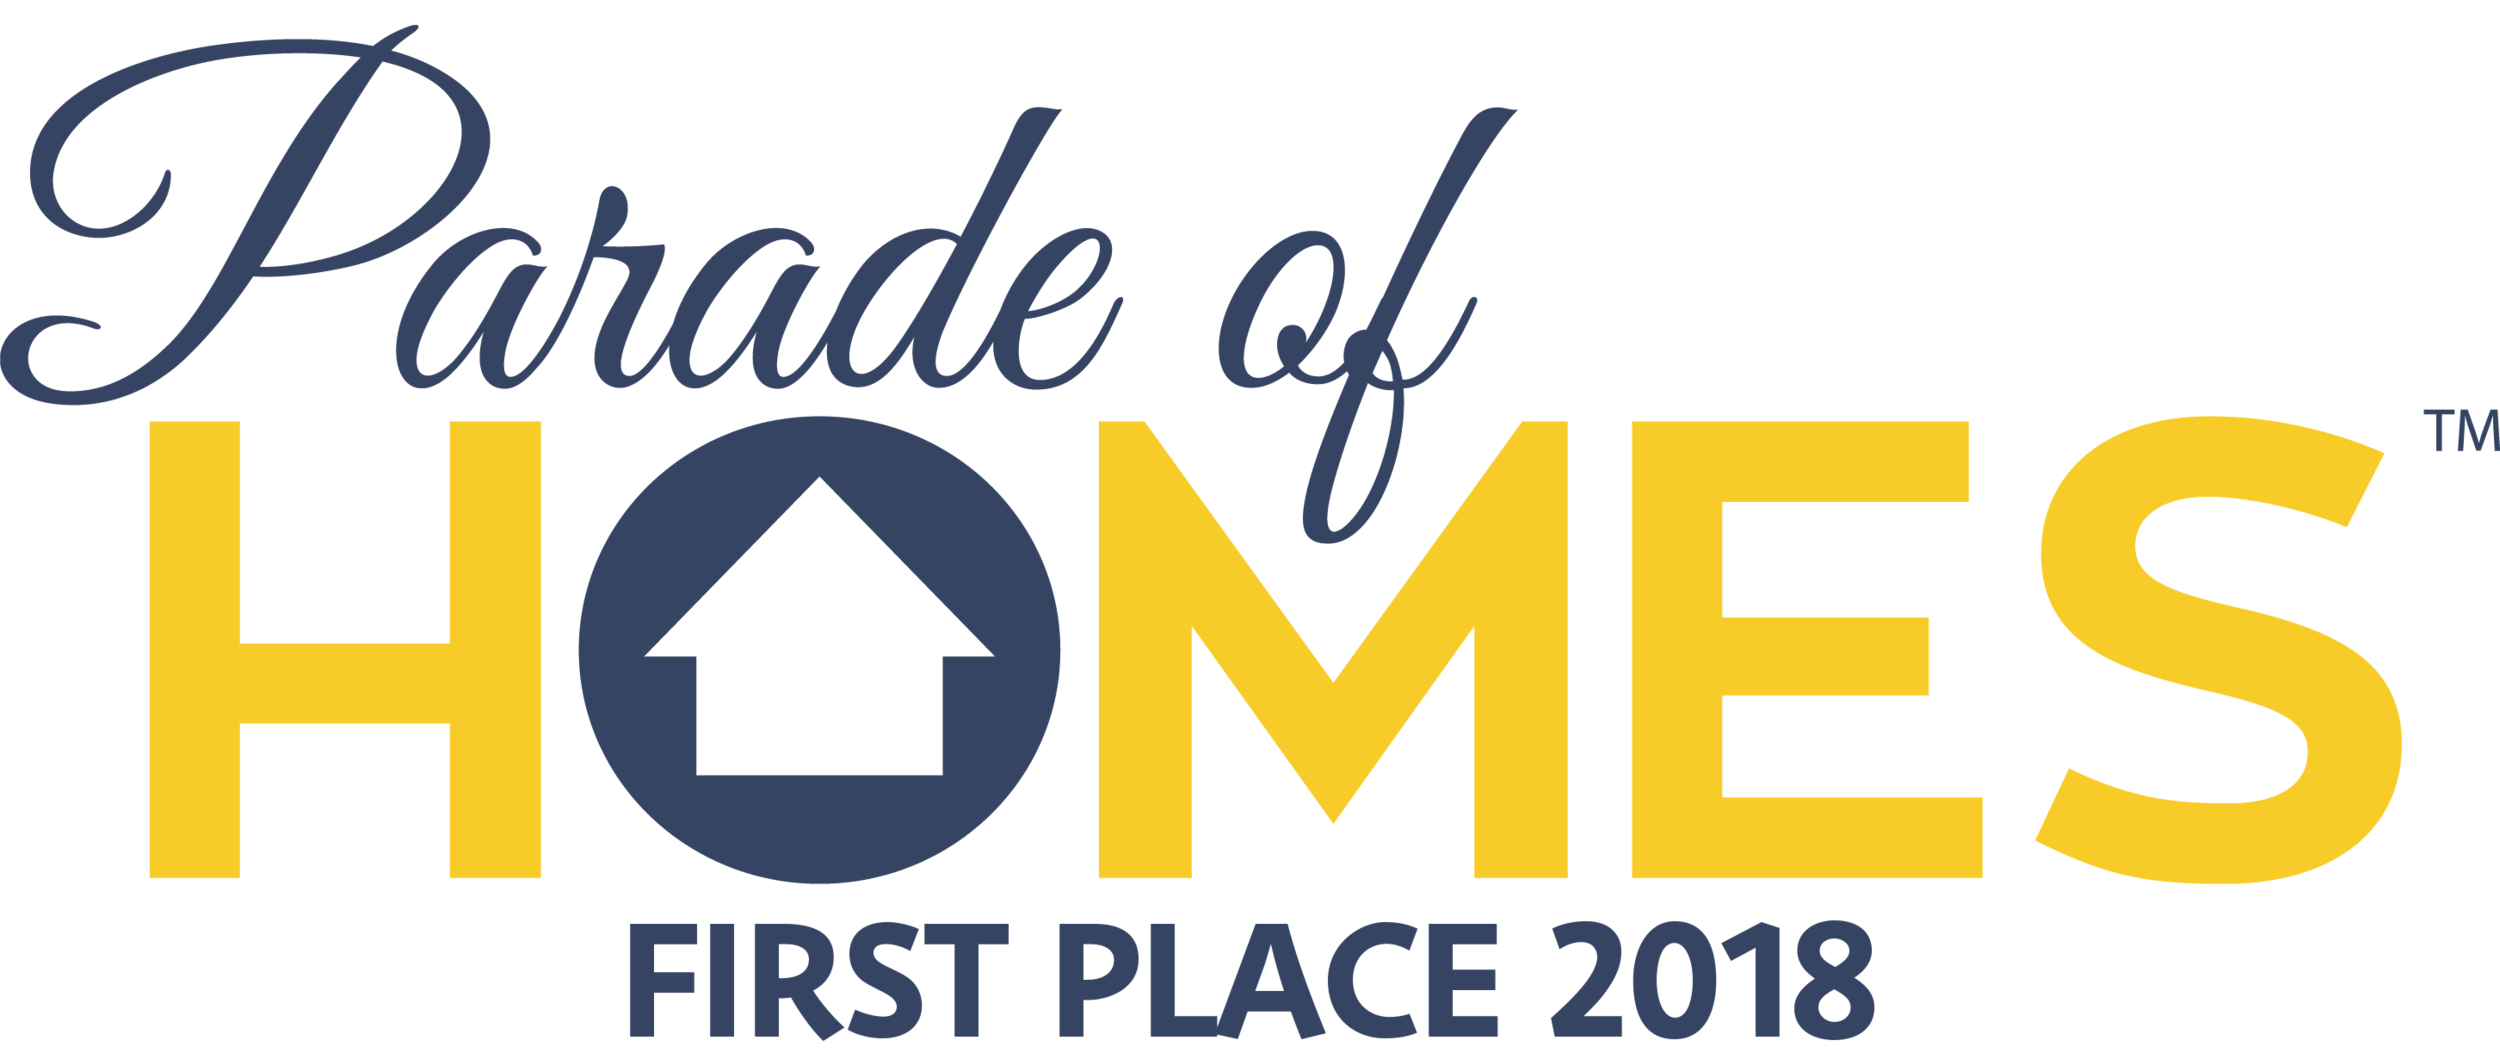 Meridian Homes LLC is proud to announce we tied for first place in the 2018 Parade of Homes $499K - $574K Custom Homes category for our Contemporary Craftsmen! Thanks to the home owners Jody and Steven Lazar for the opportunity to build this beautiful custom home for them! Thanks Greater Orlando Builders Association for the award.